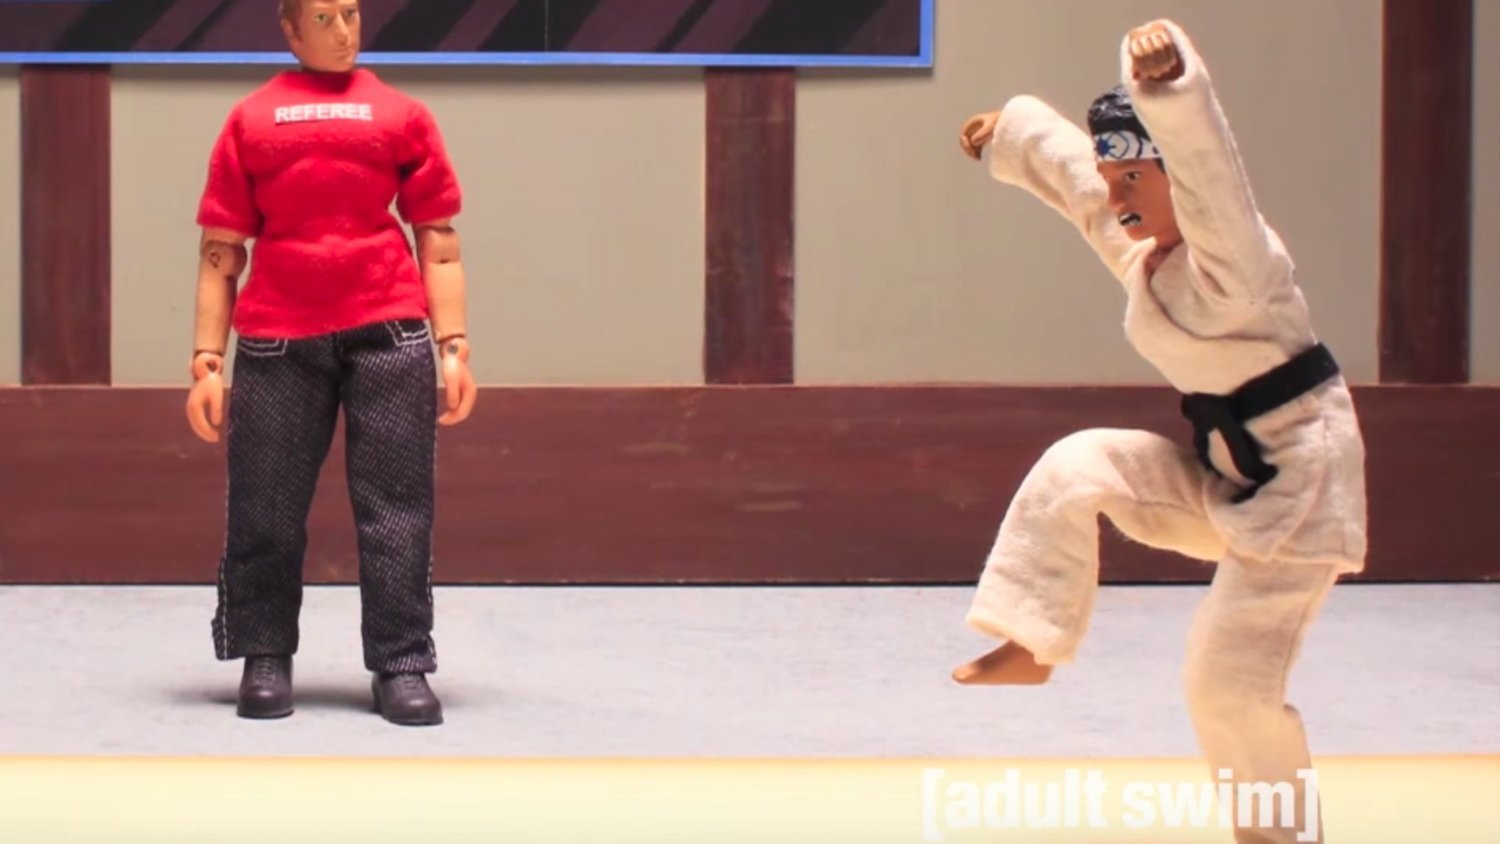 Watch 3 of ROBOT CHICKEN's Hilarious KARATE KID Skits -